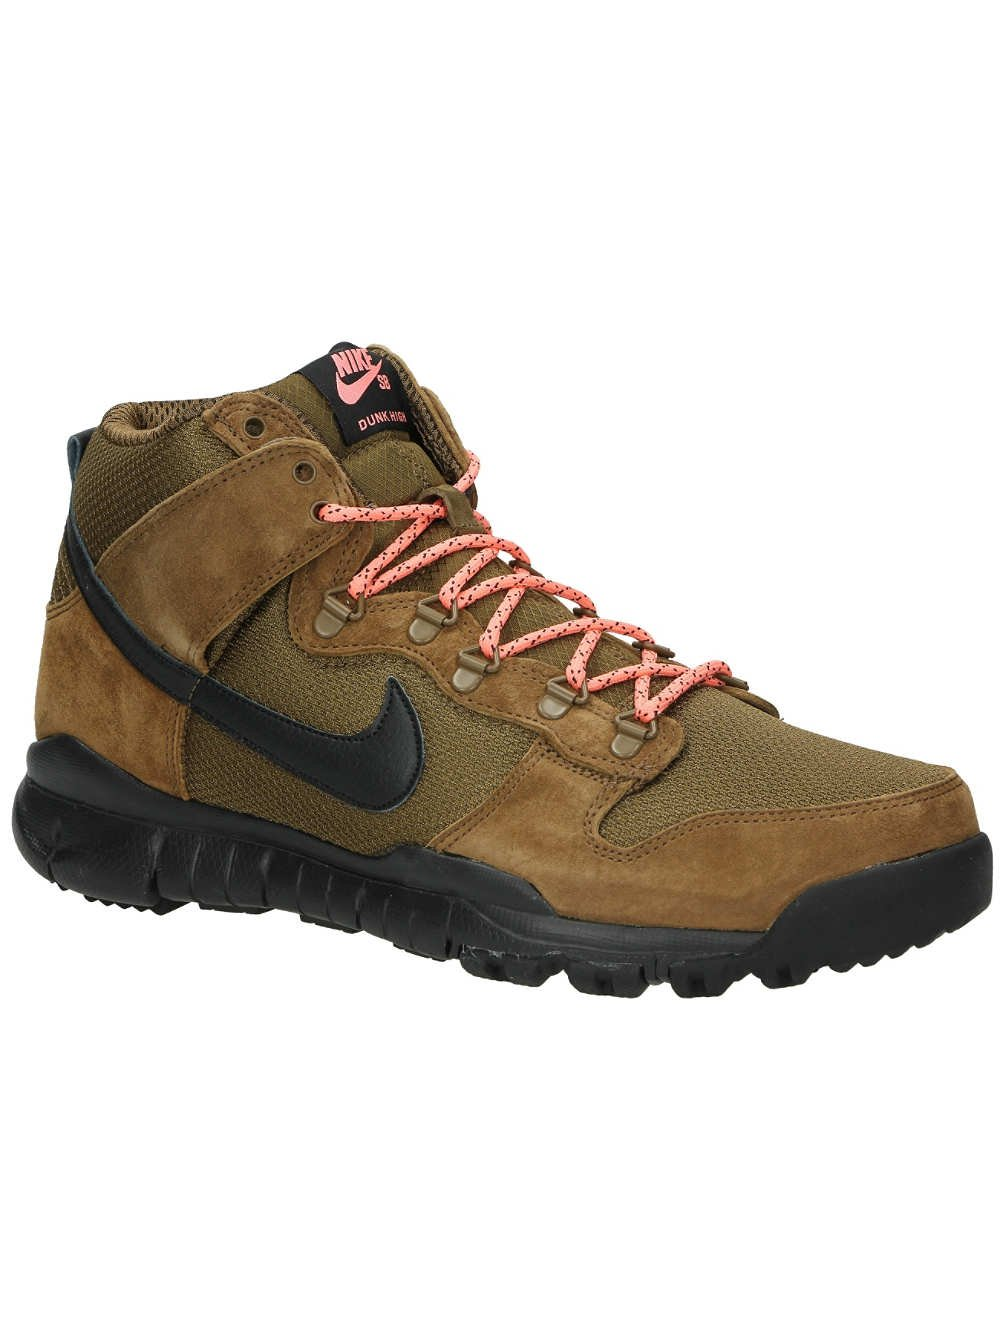 best sneakers aff95 b2aa8 Nike SB Dunk High Boot Mens Hi Top Trainers 536182 Sneakers Shoes (US 9.5,  Military Brown Black 203)